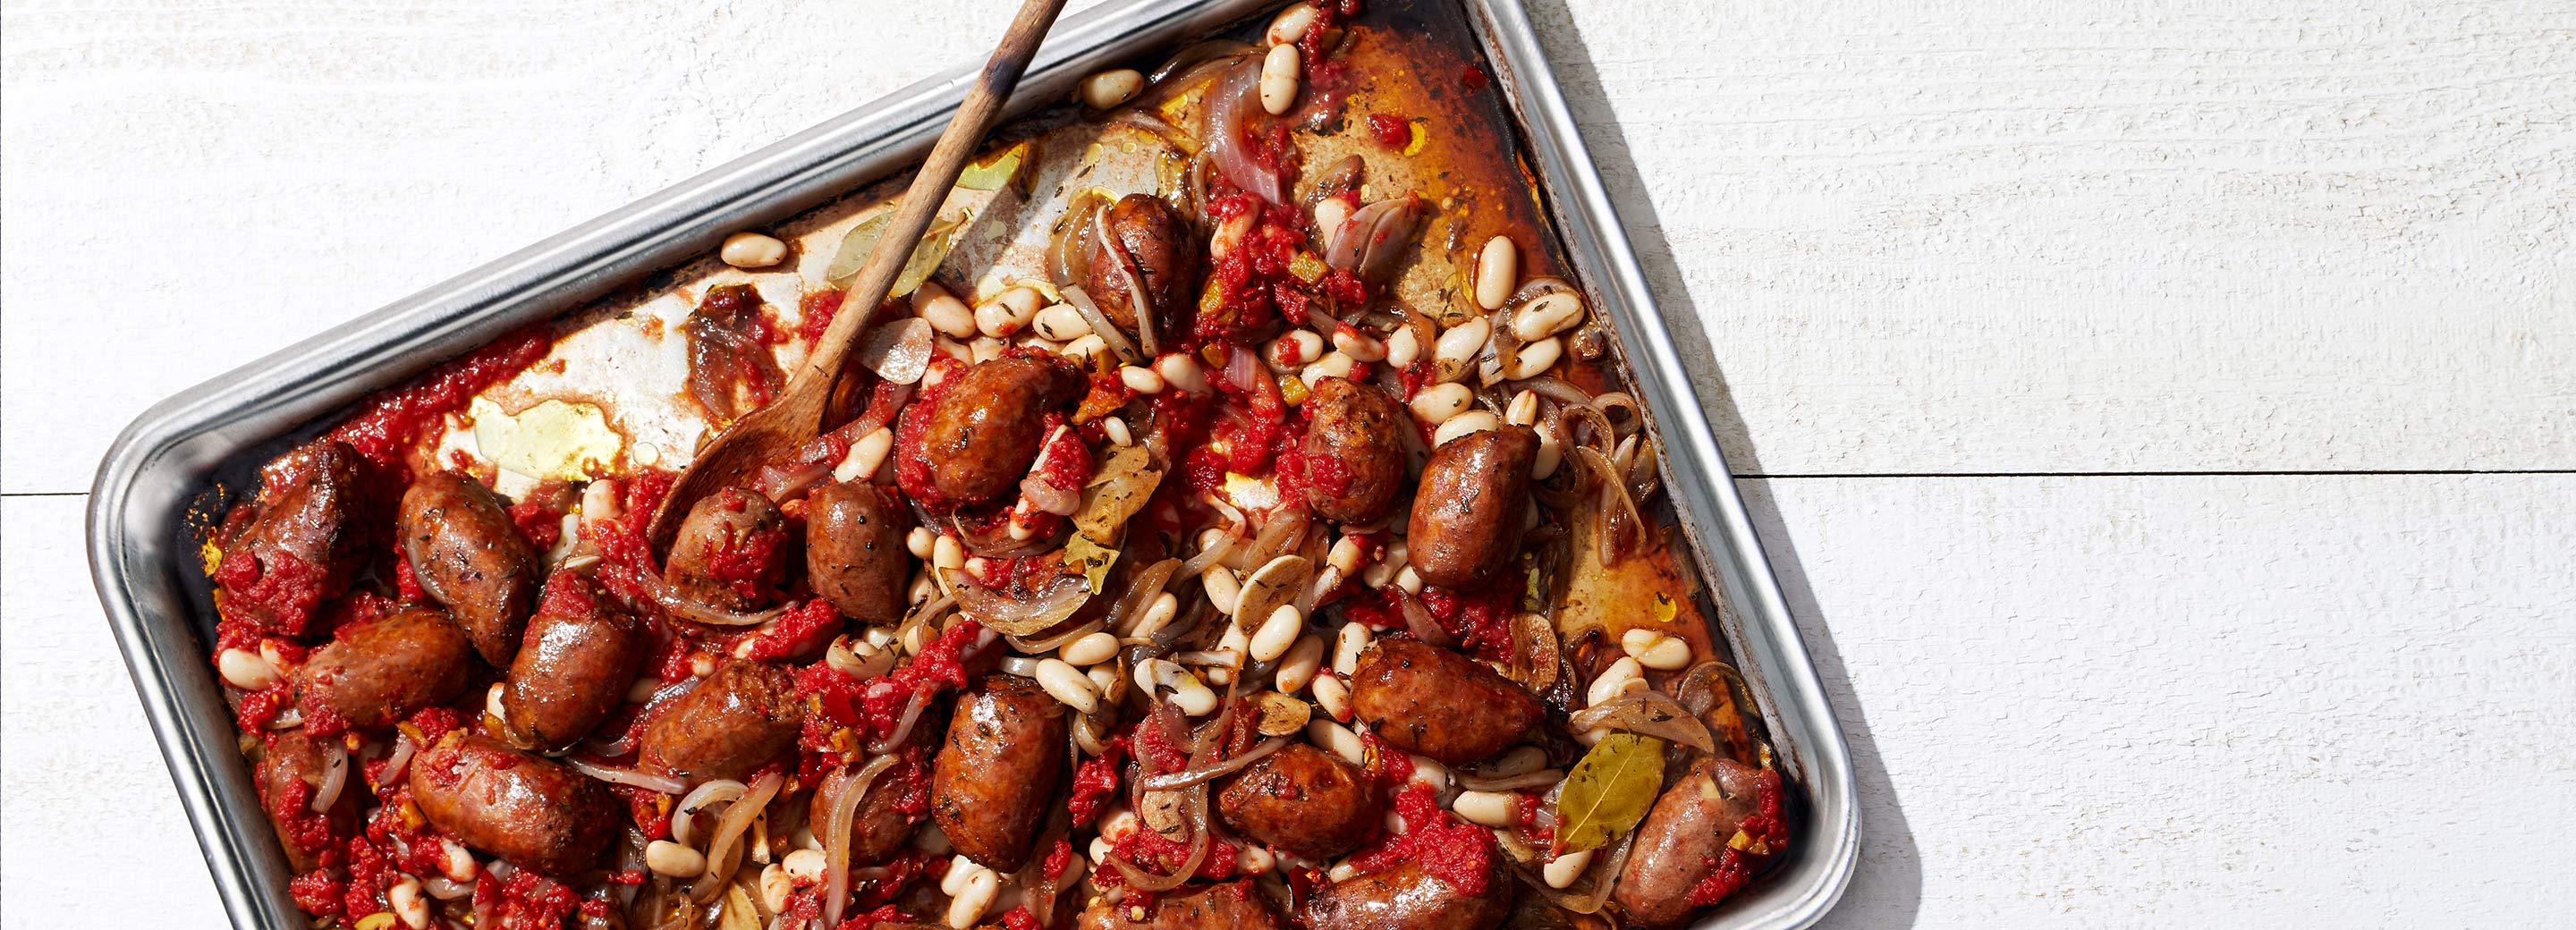 Sausage with White Beans and Tomatoes